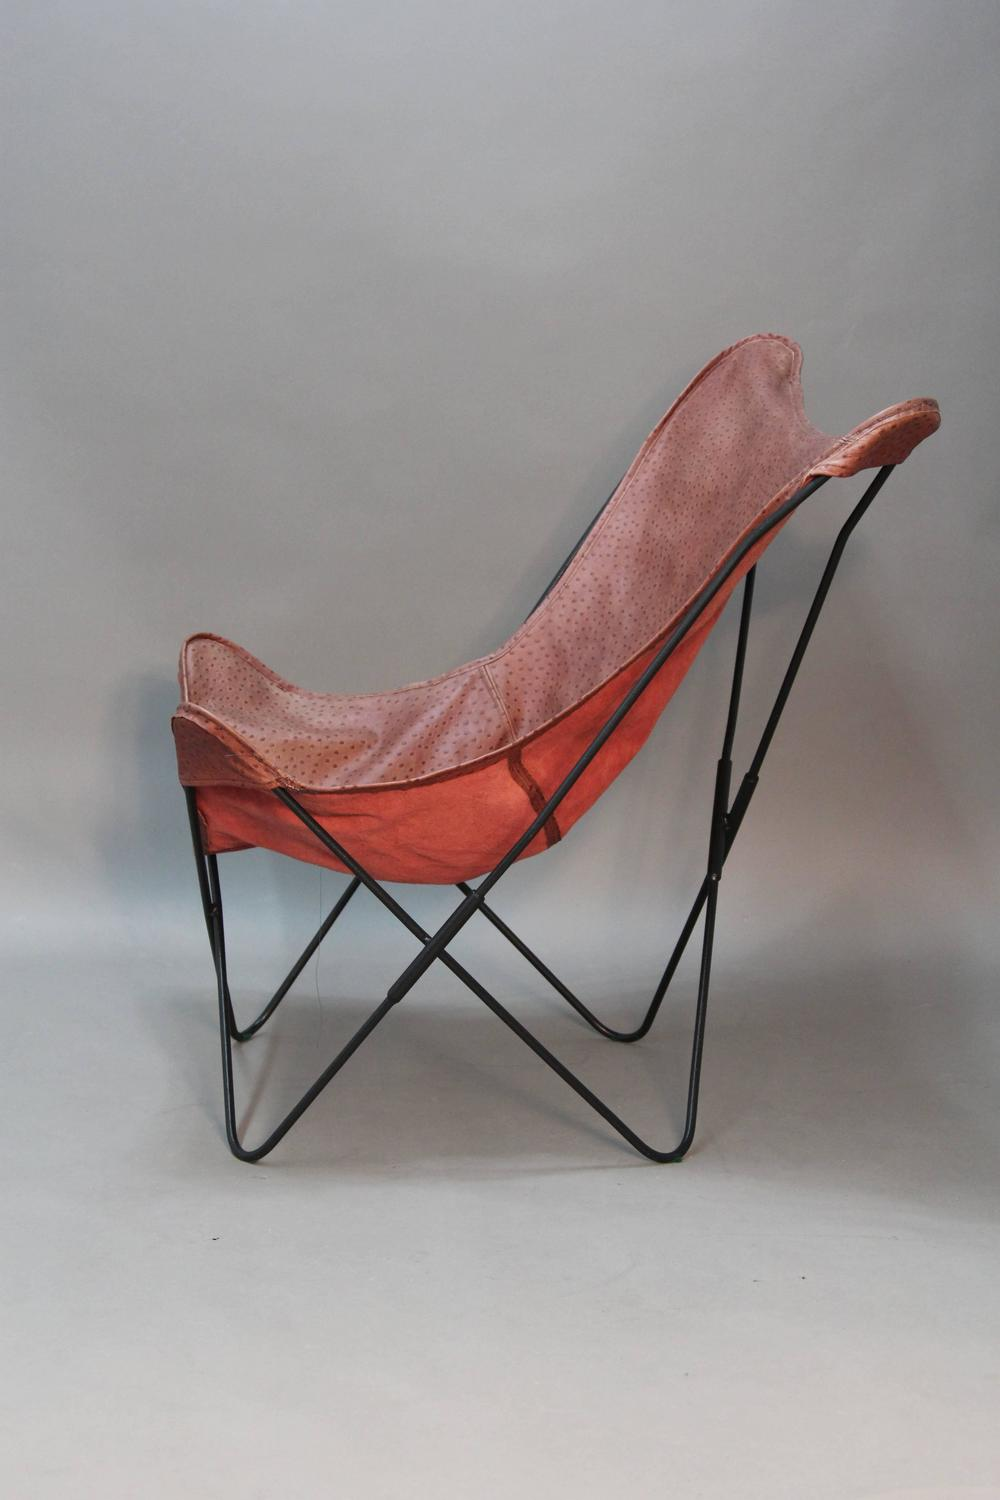 Ostrich Grain Leather Butterfly Hardoy Lounge Chair Vintage For Sale at 1stdibs